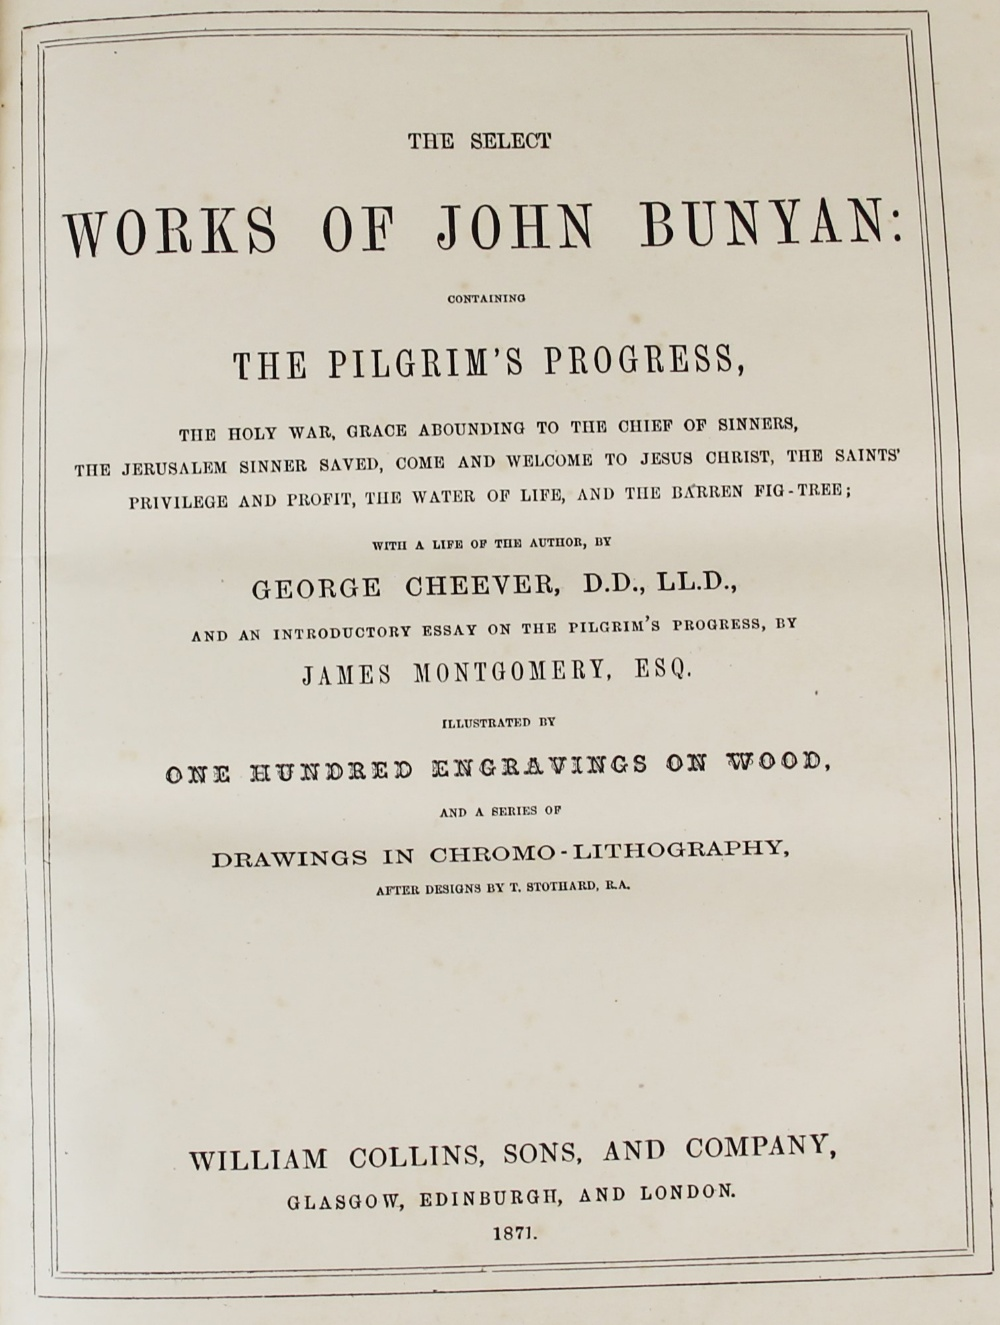 Bunyan (J), THE SELECT WORKS OF JOHN BUNYAN: WITH A LIFE OF THE AUTHOR BY GEORGE CHEEVER, first - Image 5 of 9